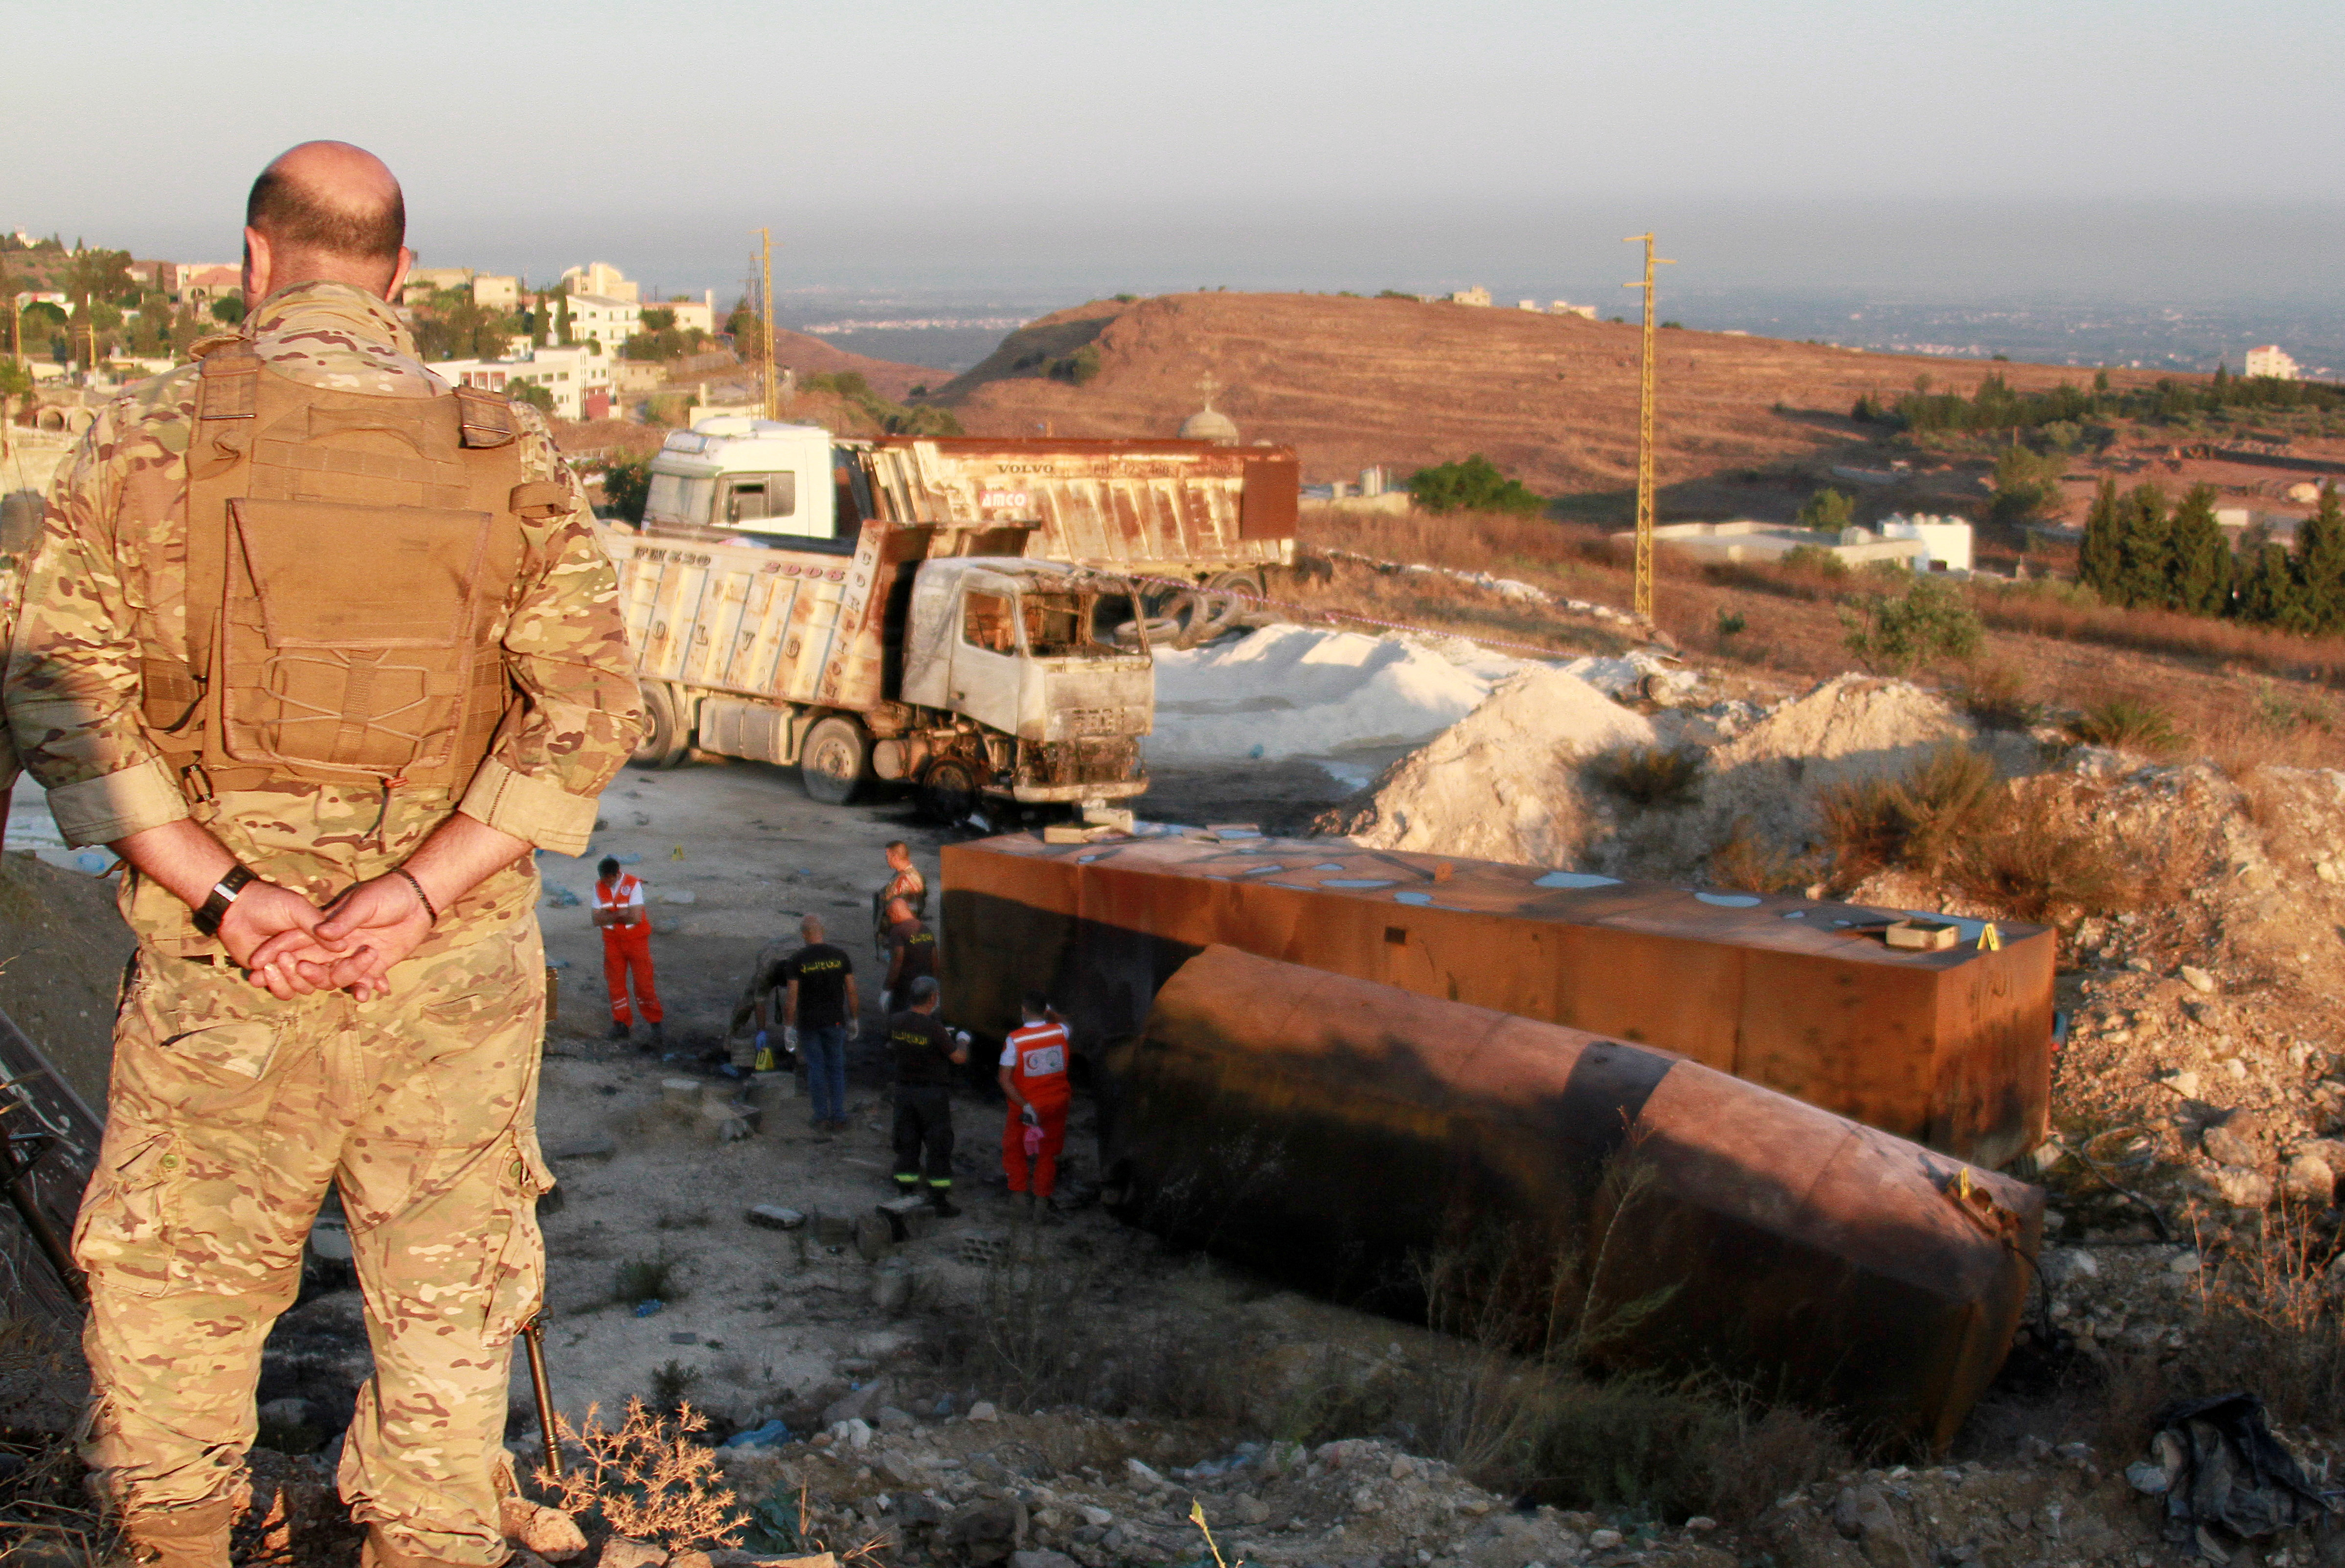 A Lebanese army soldier stands guard near the site of a fuel tank explosion in Akkar, in northern Lebanon, August 15, 2021. REUTERS/Omar Ibrahim